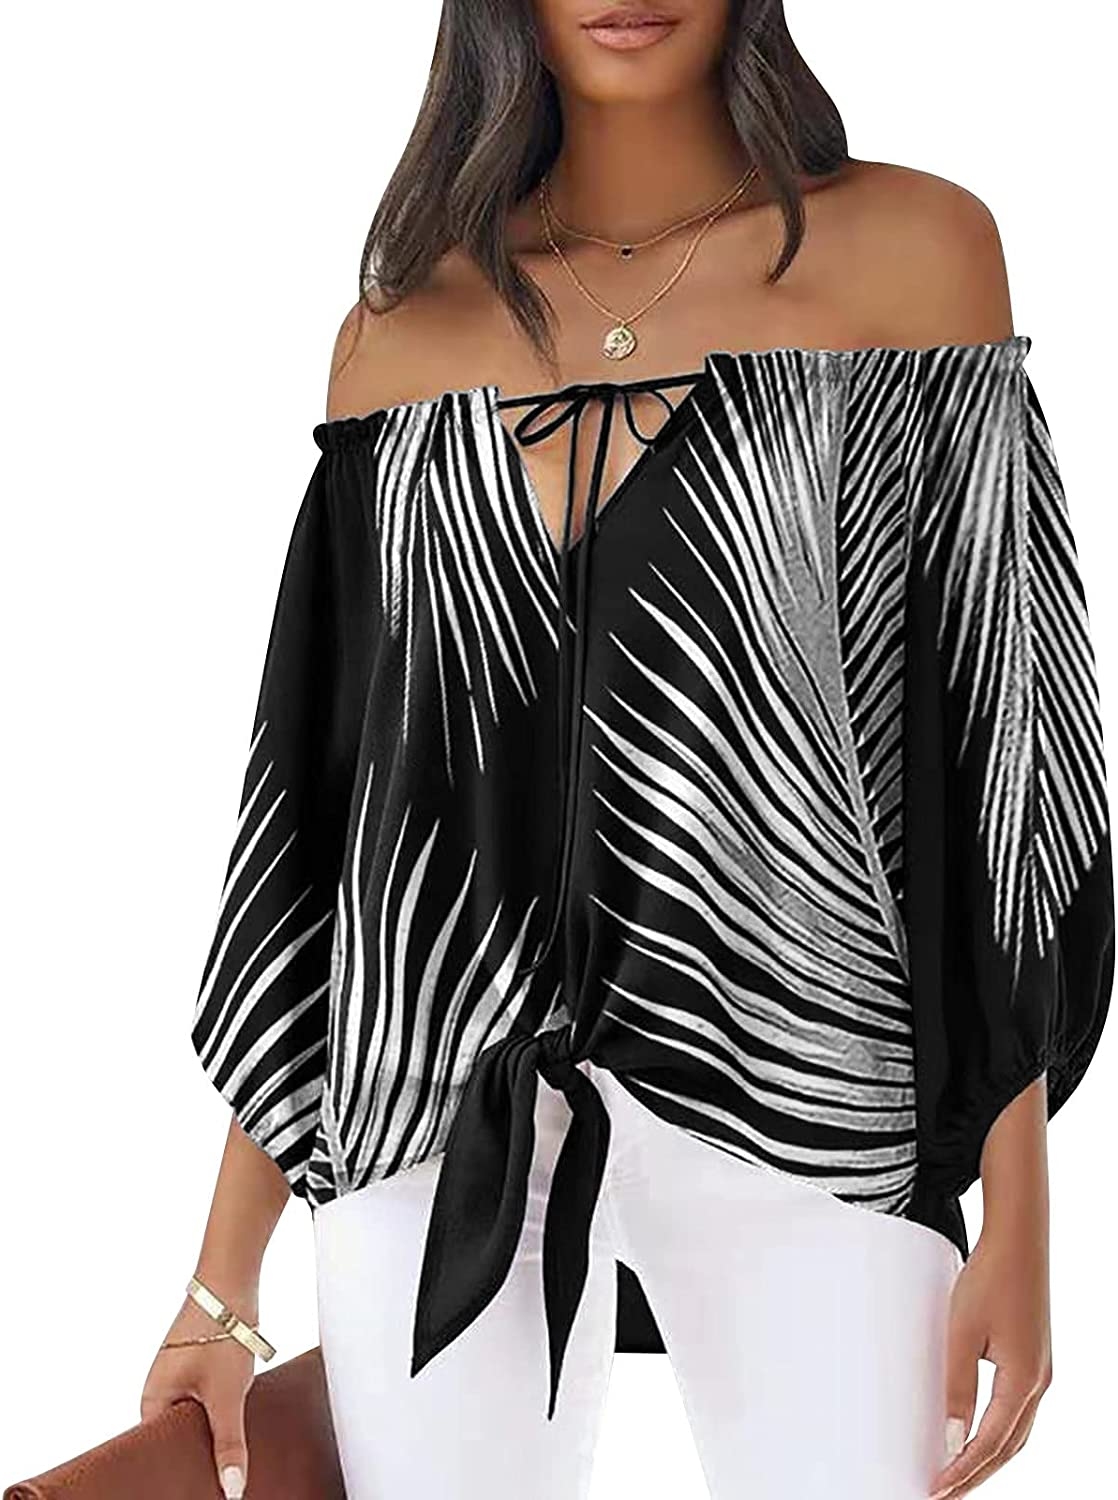 XNXX Blouses for Women Off Shoulder 3/4 Sleeve Tie Knot T Shirts Tops Chiffon Print Casual Tee Shirts